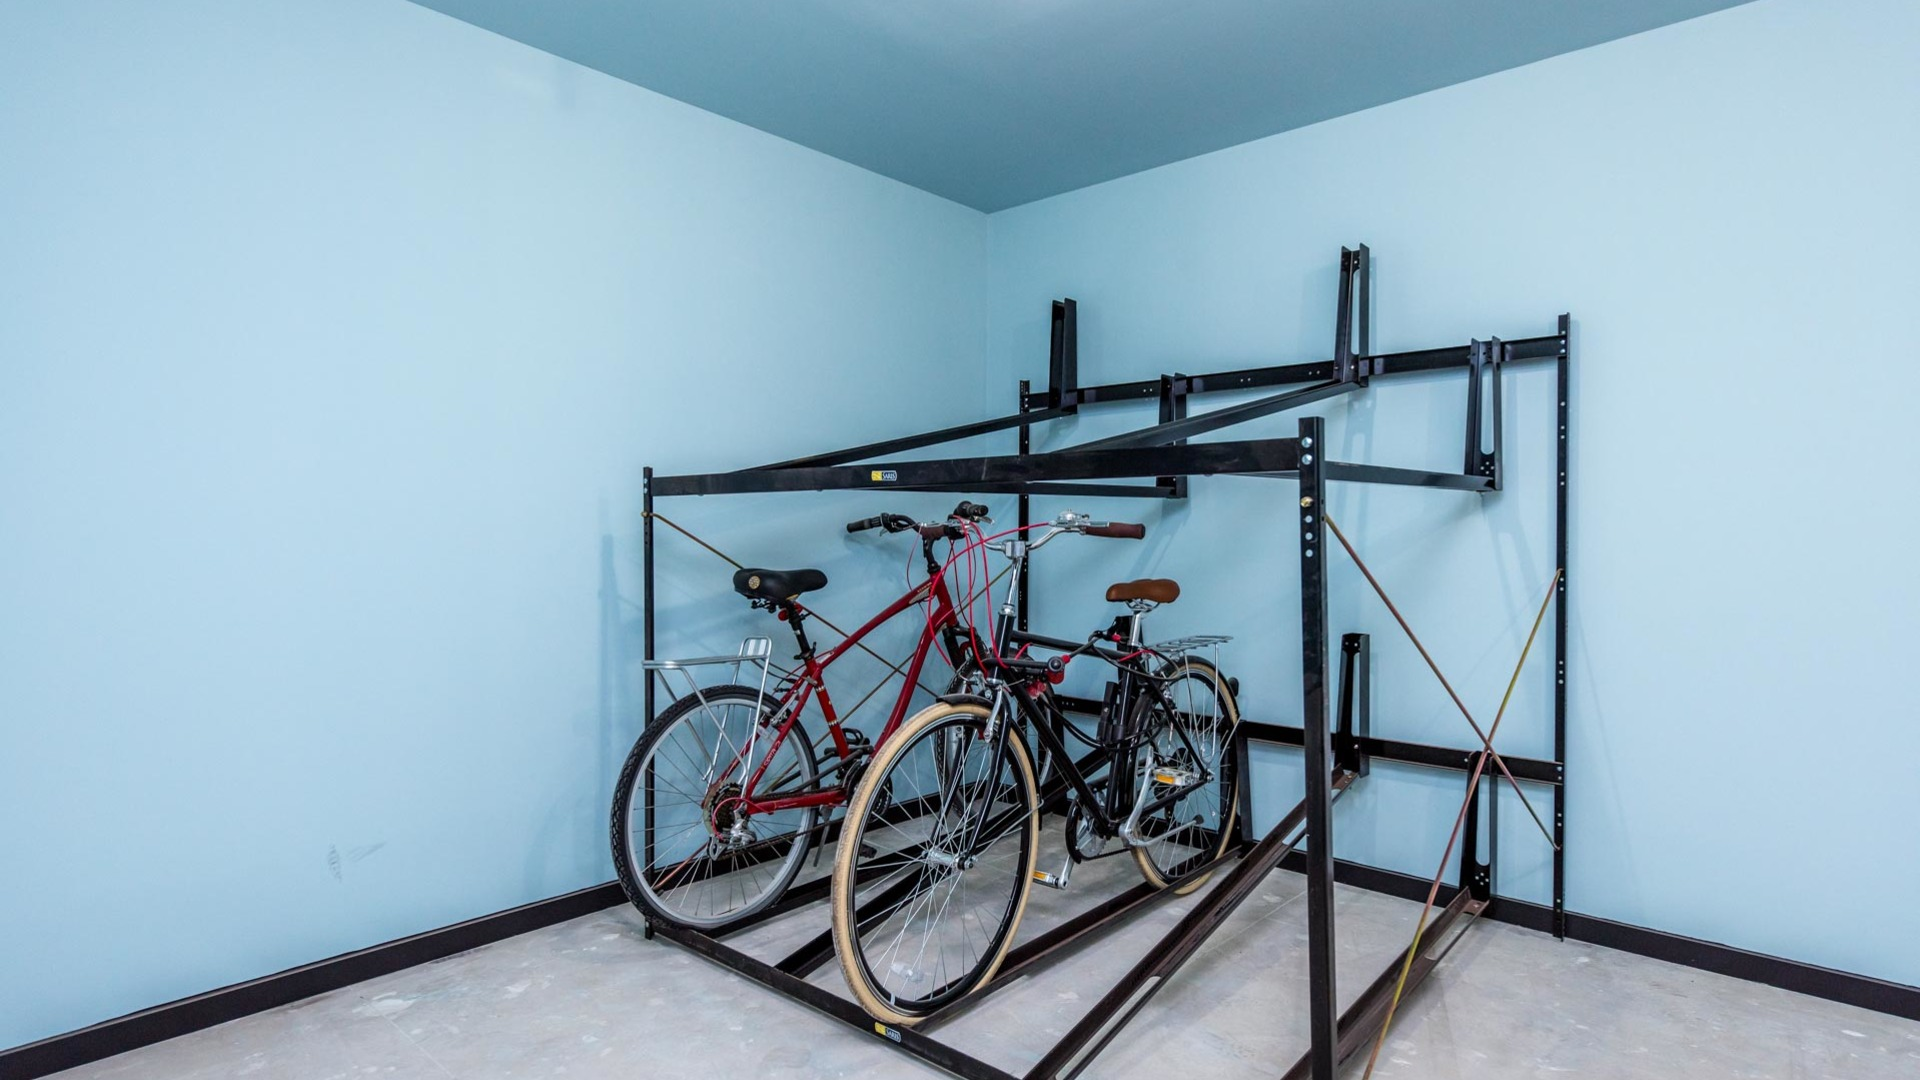 027 785 dekalb avenue bike room 1